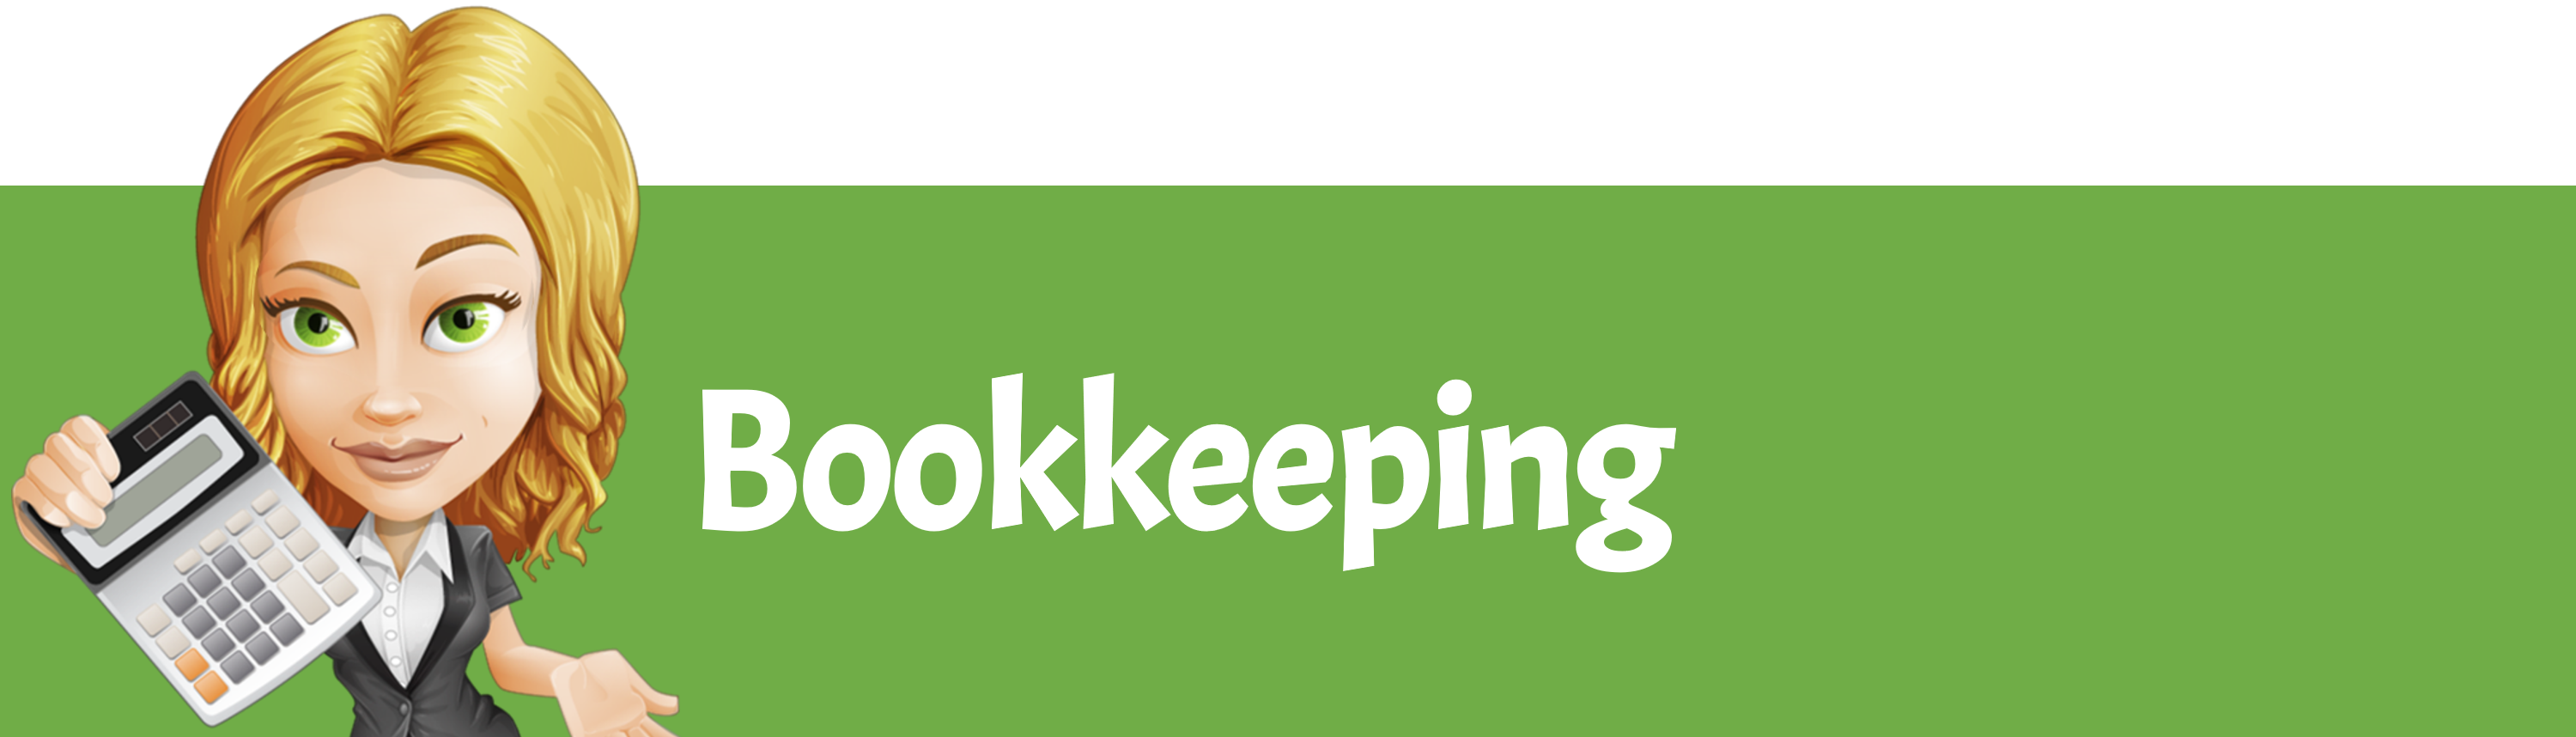 bookkeeping lady with calc